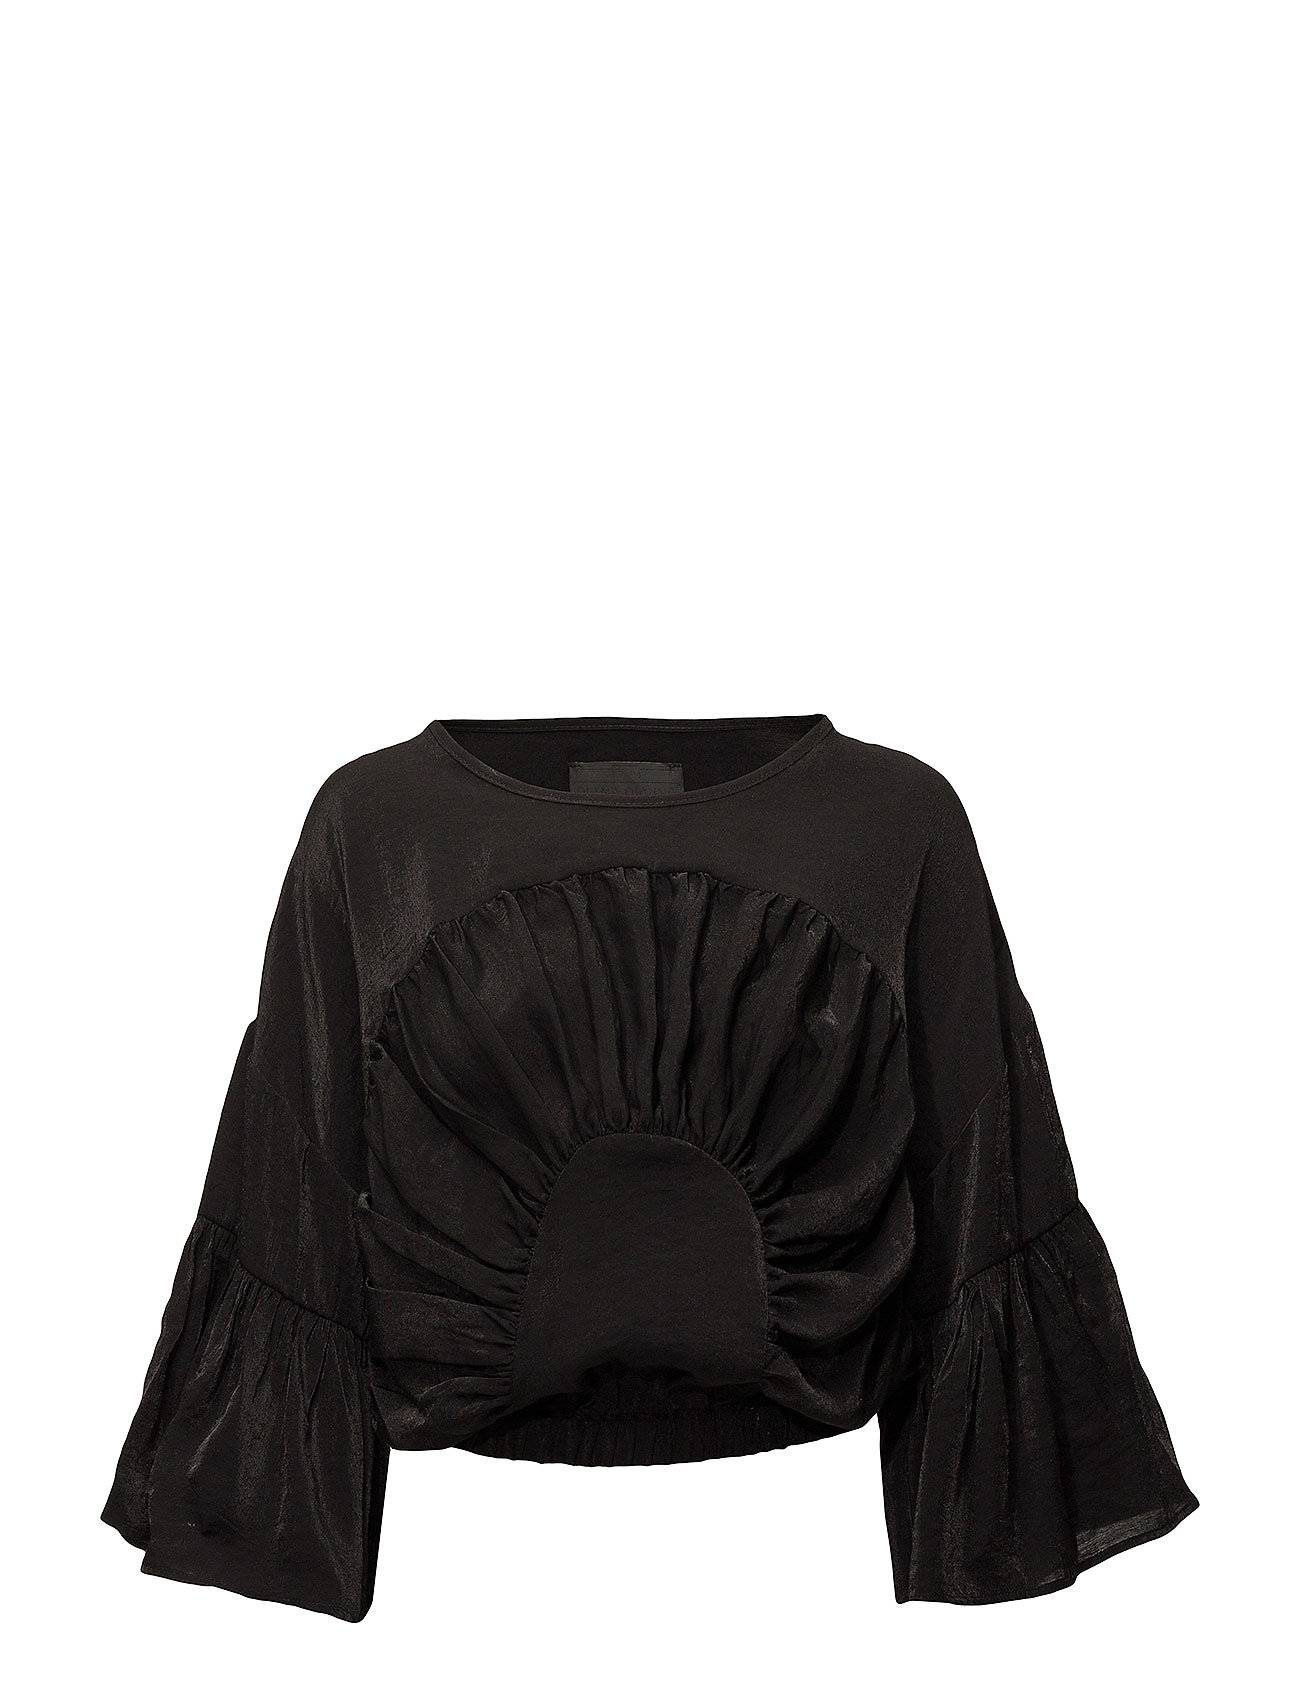 Diana Orving Arch Blouse